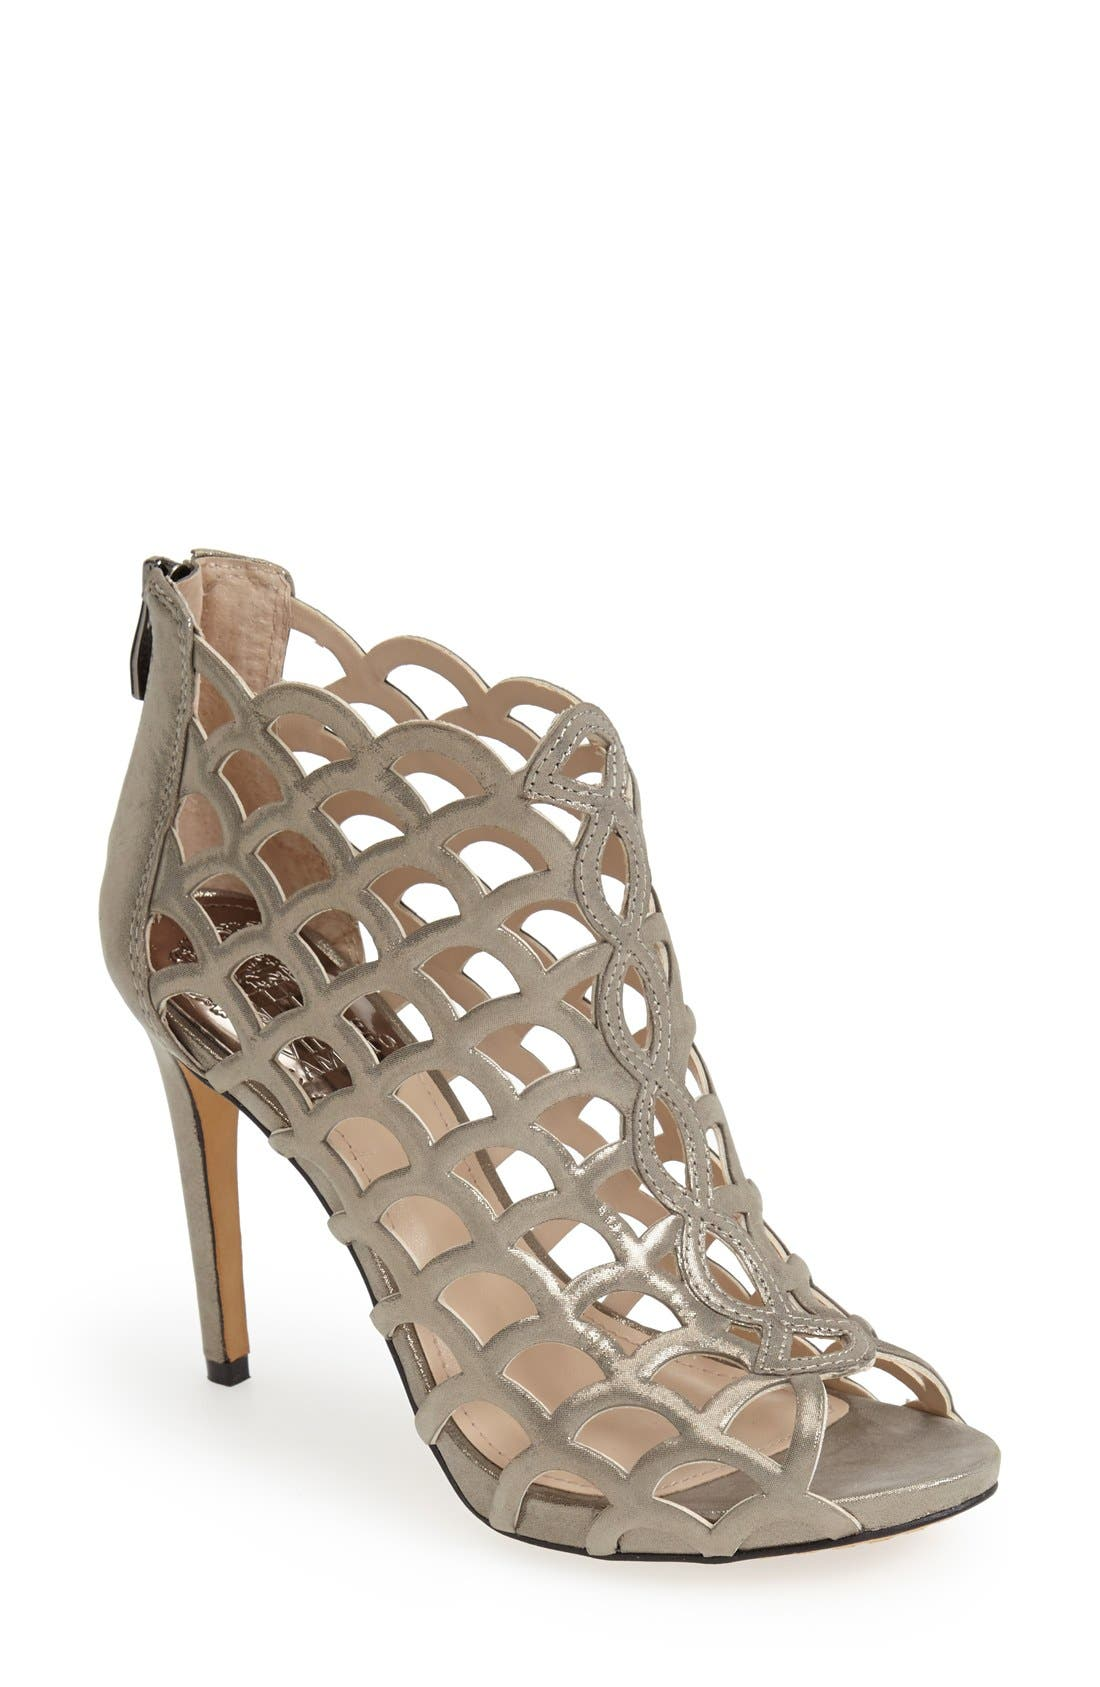 Alternate Image 1 Selected - Vince Camuto 'Fontanela' Sandal